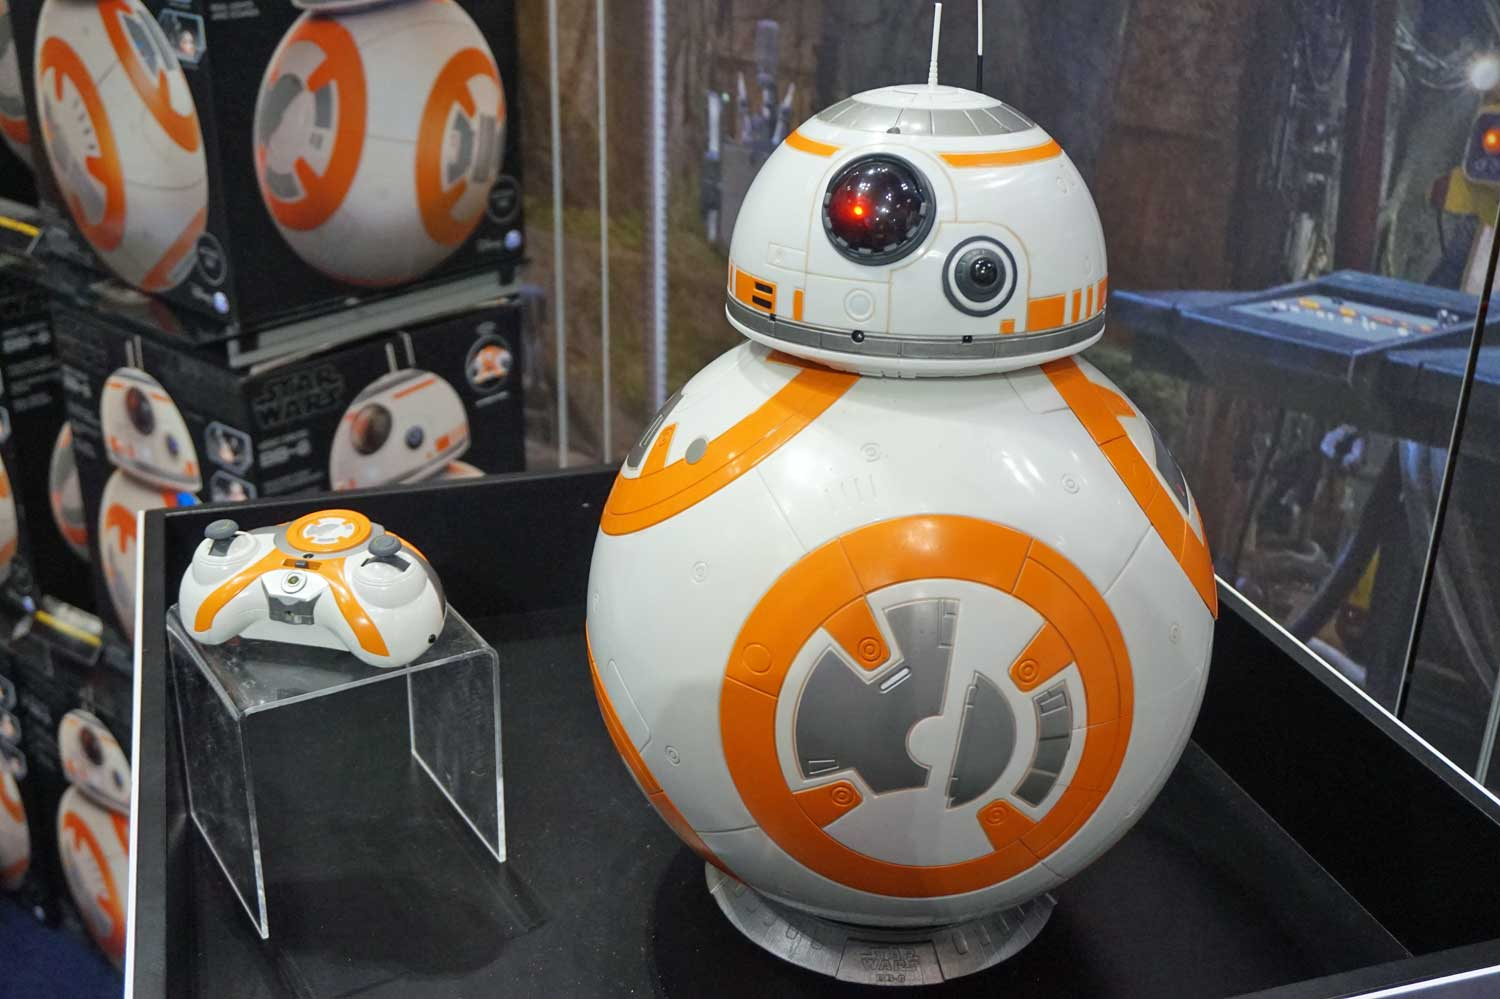 This BB-8 Robot is Just Like the Real Thing